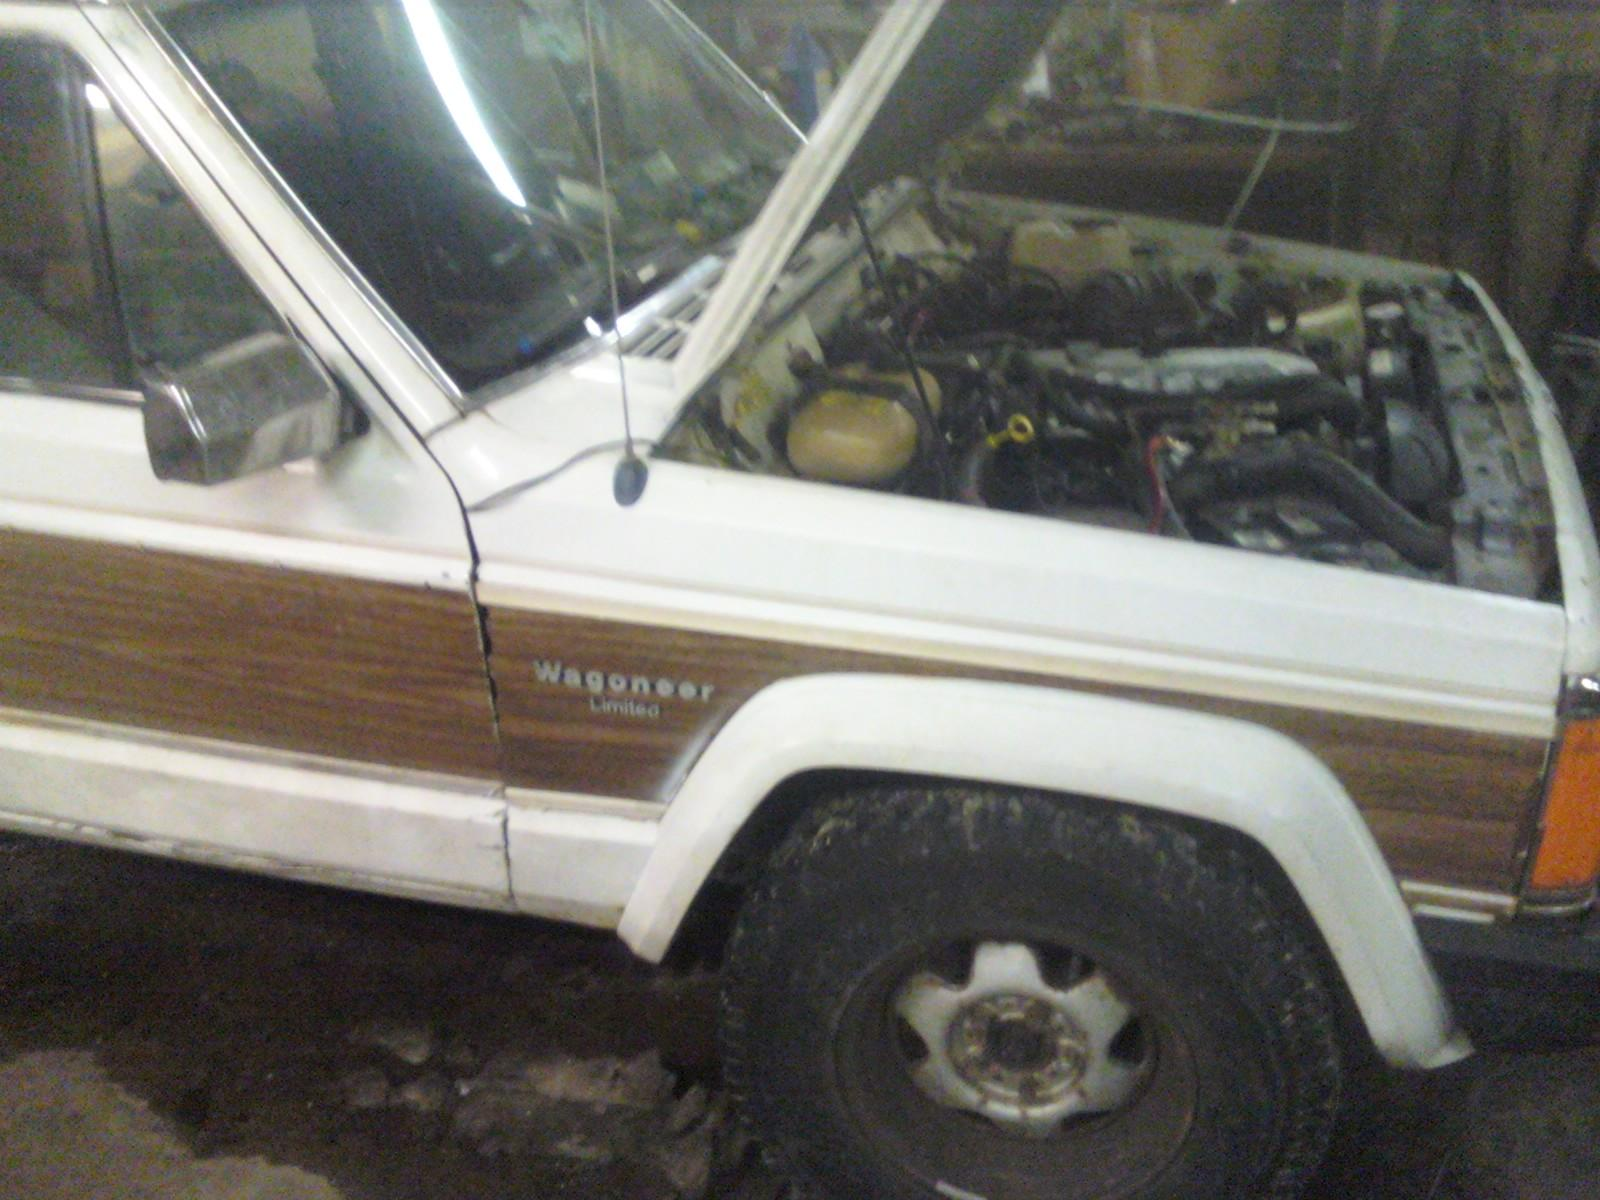 TH3_78_D3D_SL3D 1989 Jeep Wagoneer 14181180